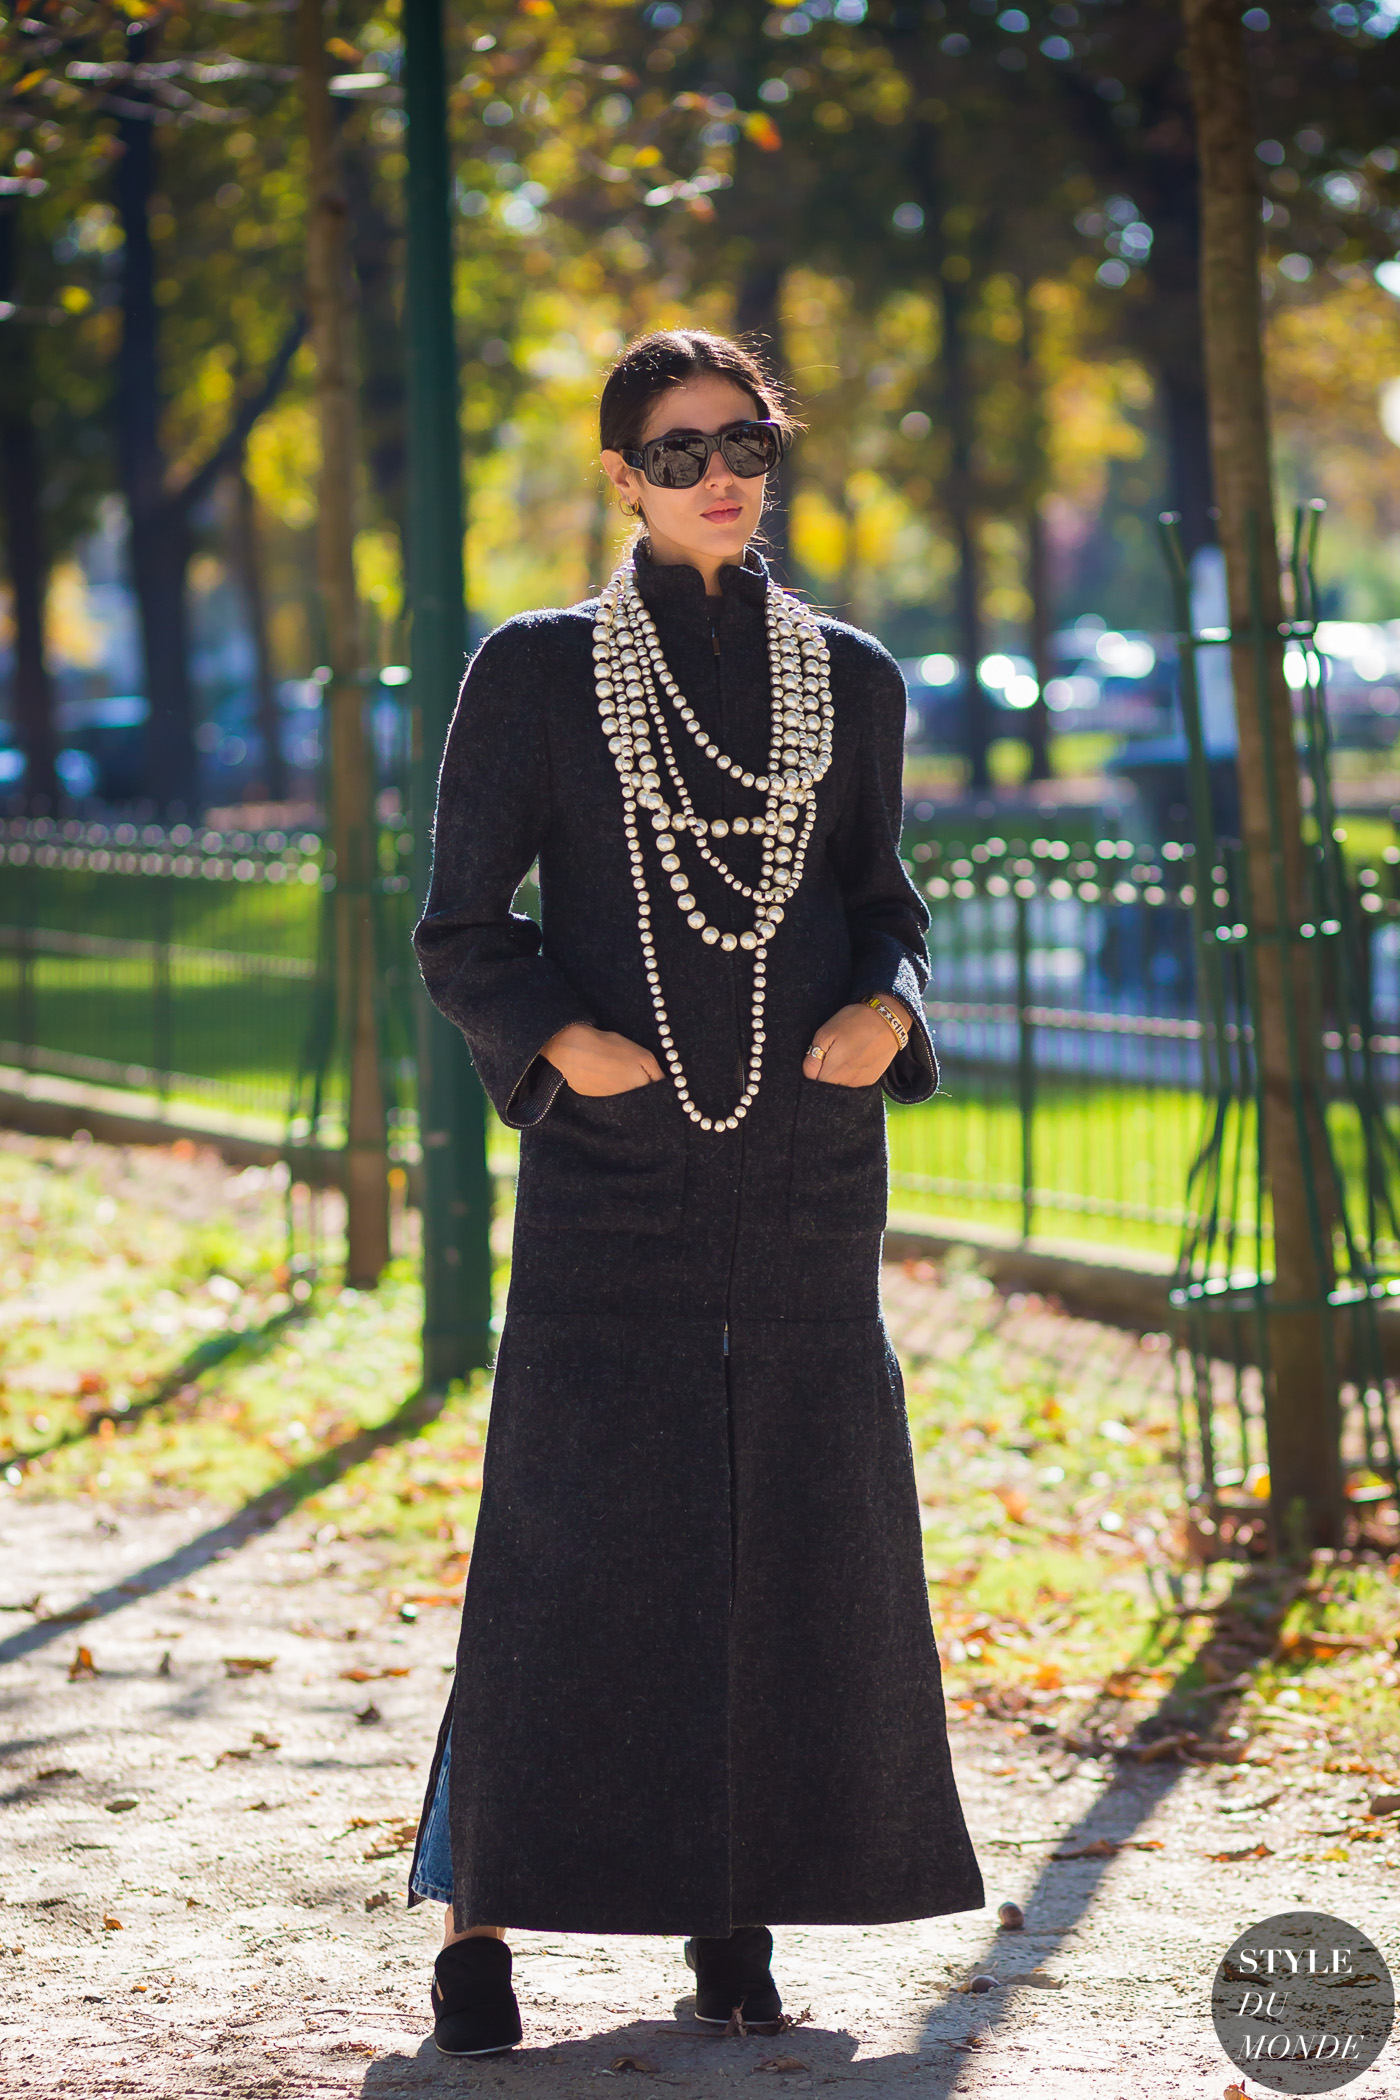 Gilda Ambrosio by STYLEDUMONDE Street Style Fashion Photography